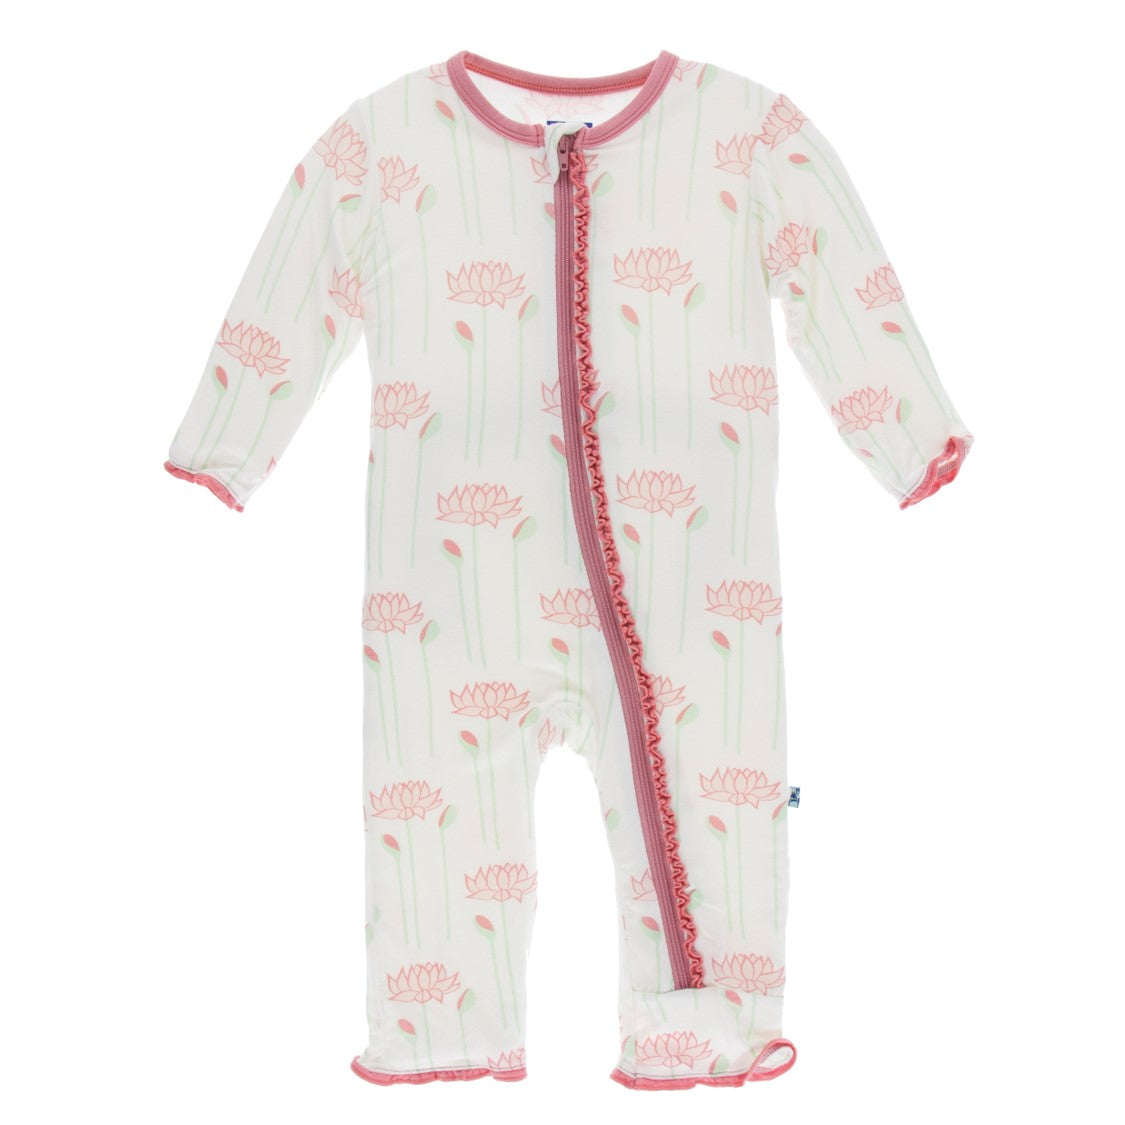 Kickee Pants - India Collection - Ruffle Coverall with Zipper – Natural Lotus Flower